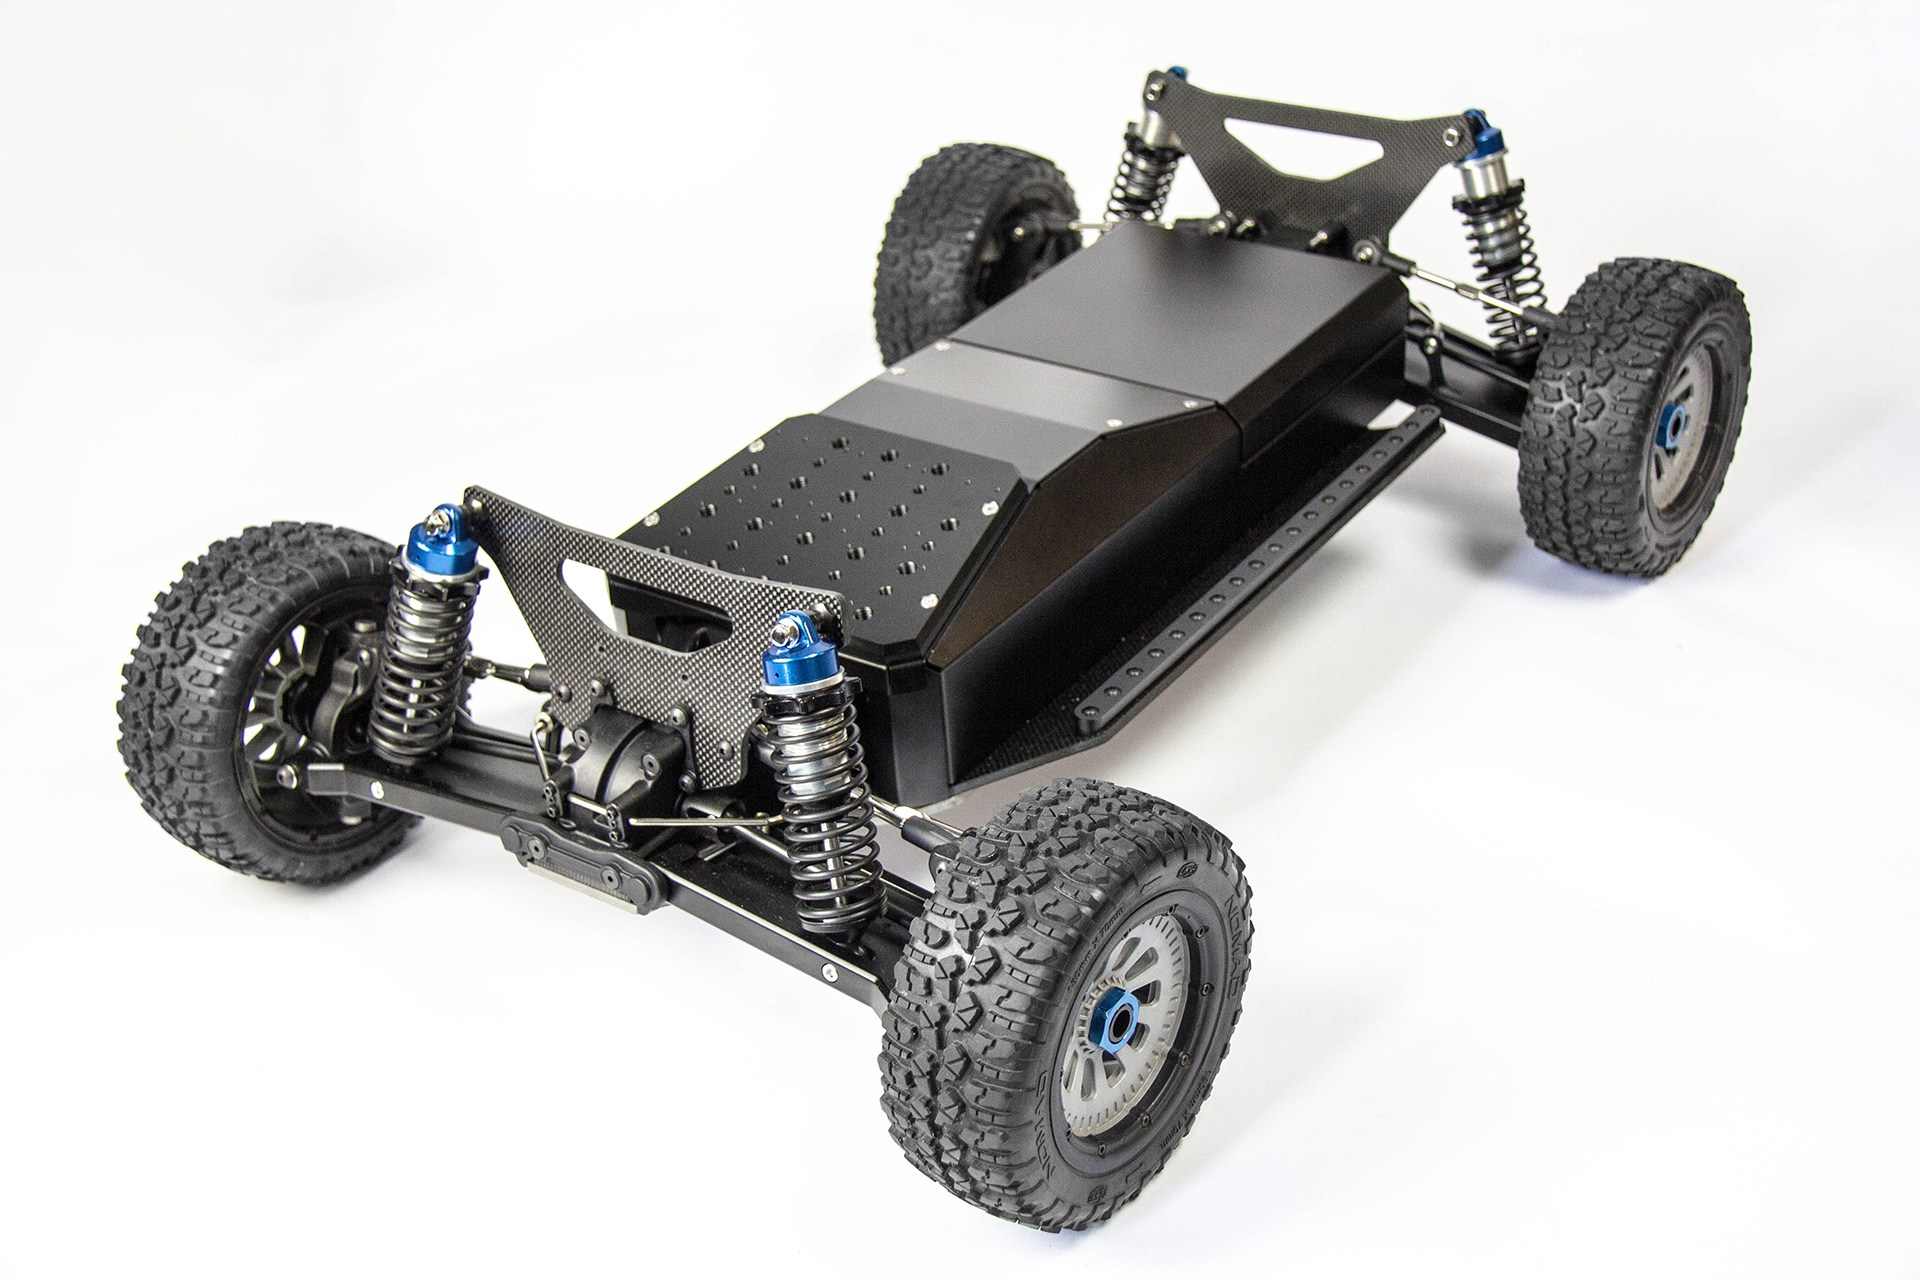 image of motion impossible mantis remote control car used for a gimbal and camera on top